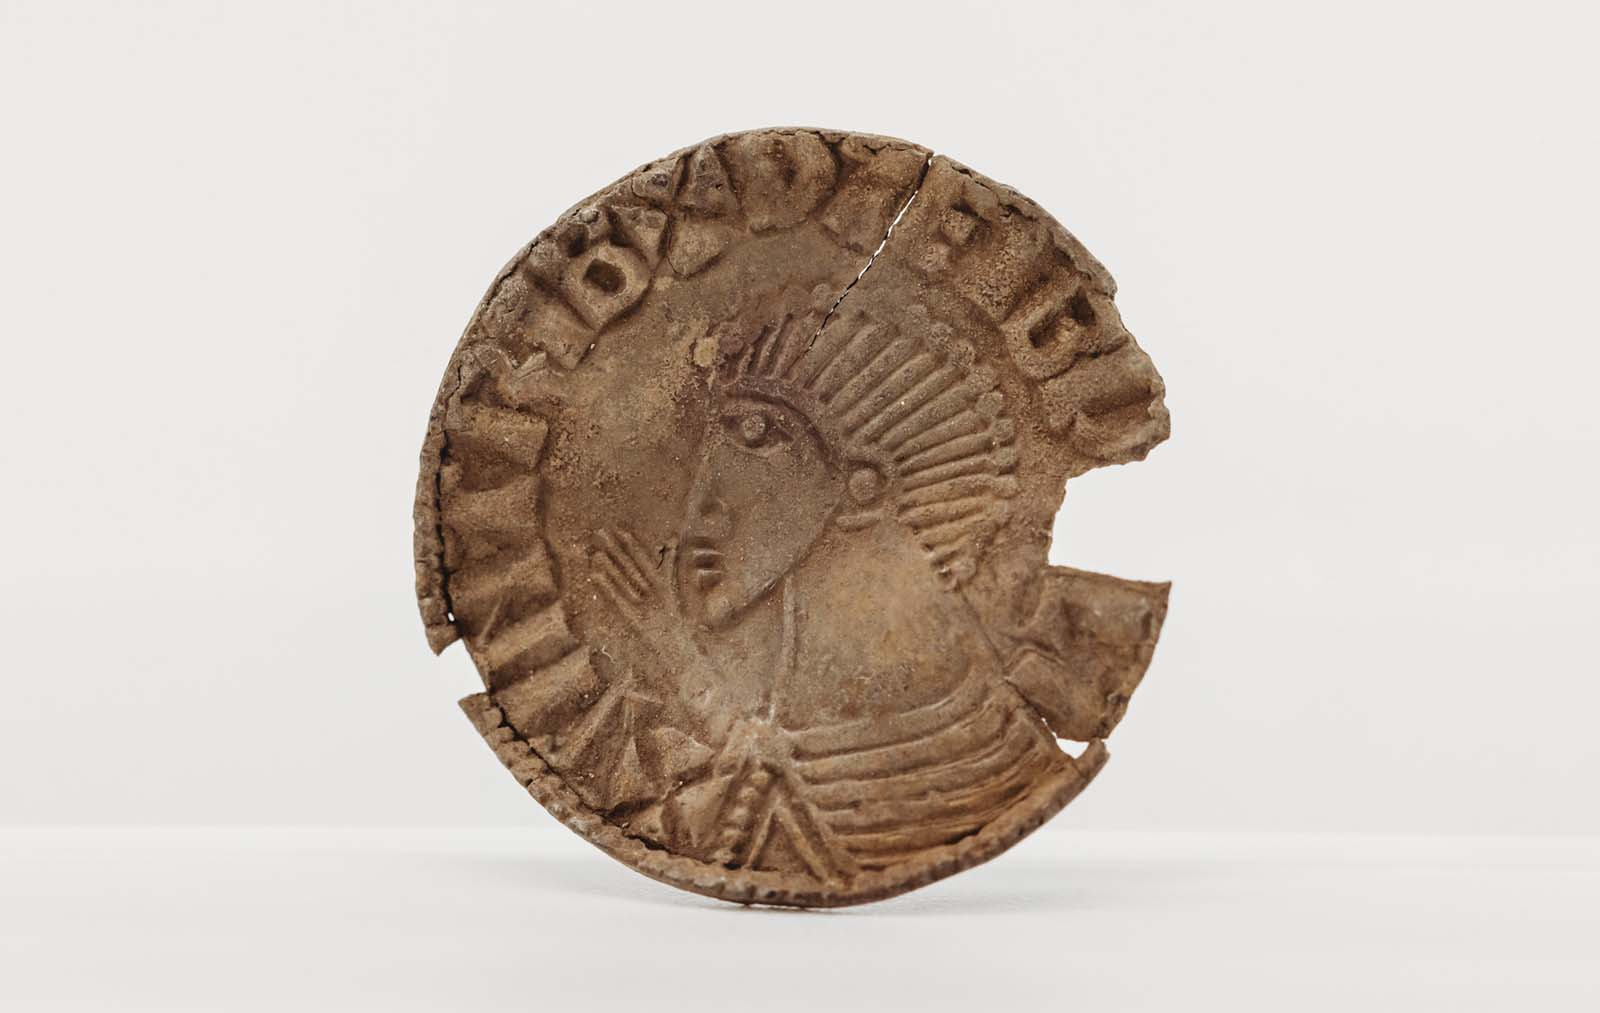 photo of a coin with kings head on it